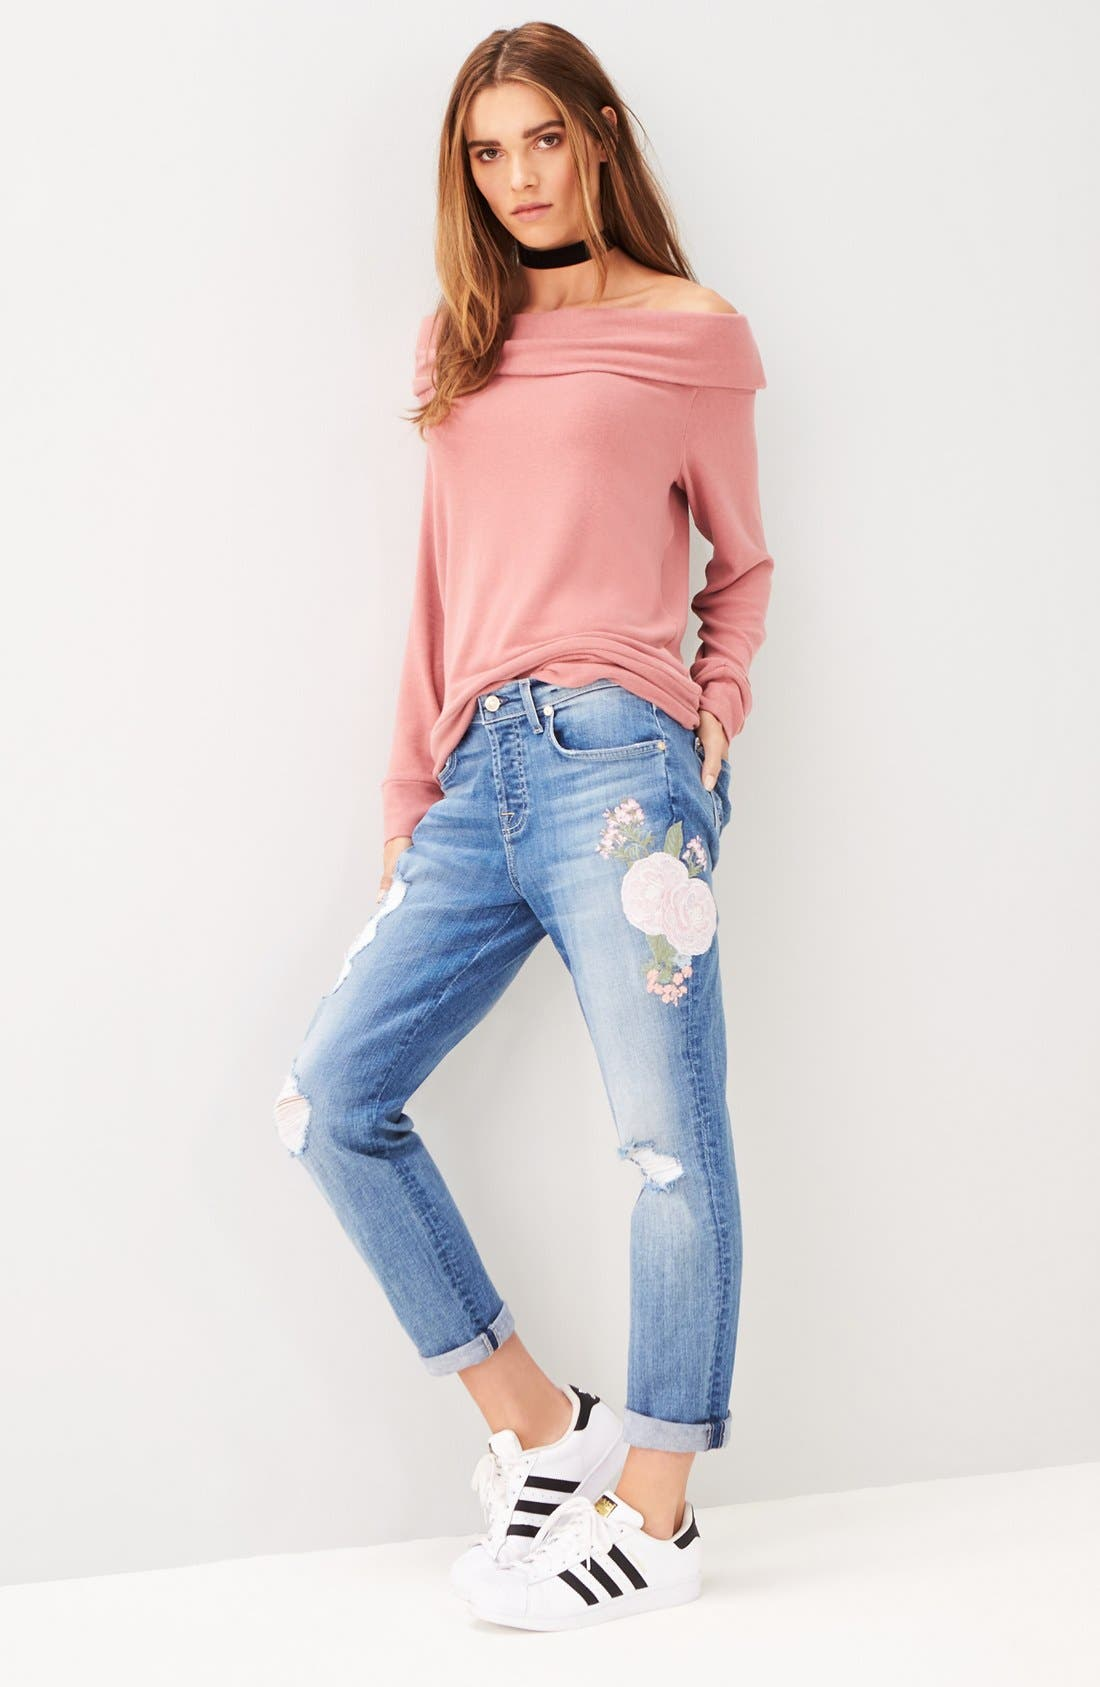 cupcakes and cashmere Top & 7 For All Mankind® Jeans Outfit with Accessories